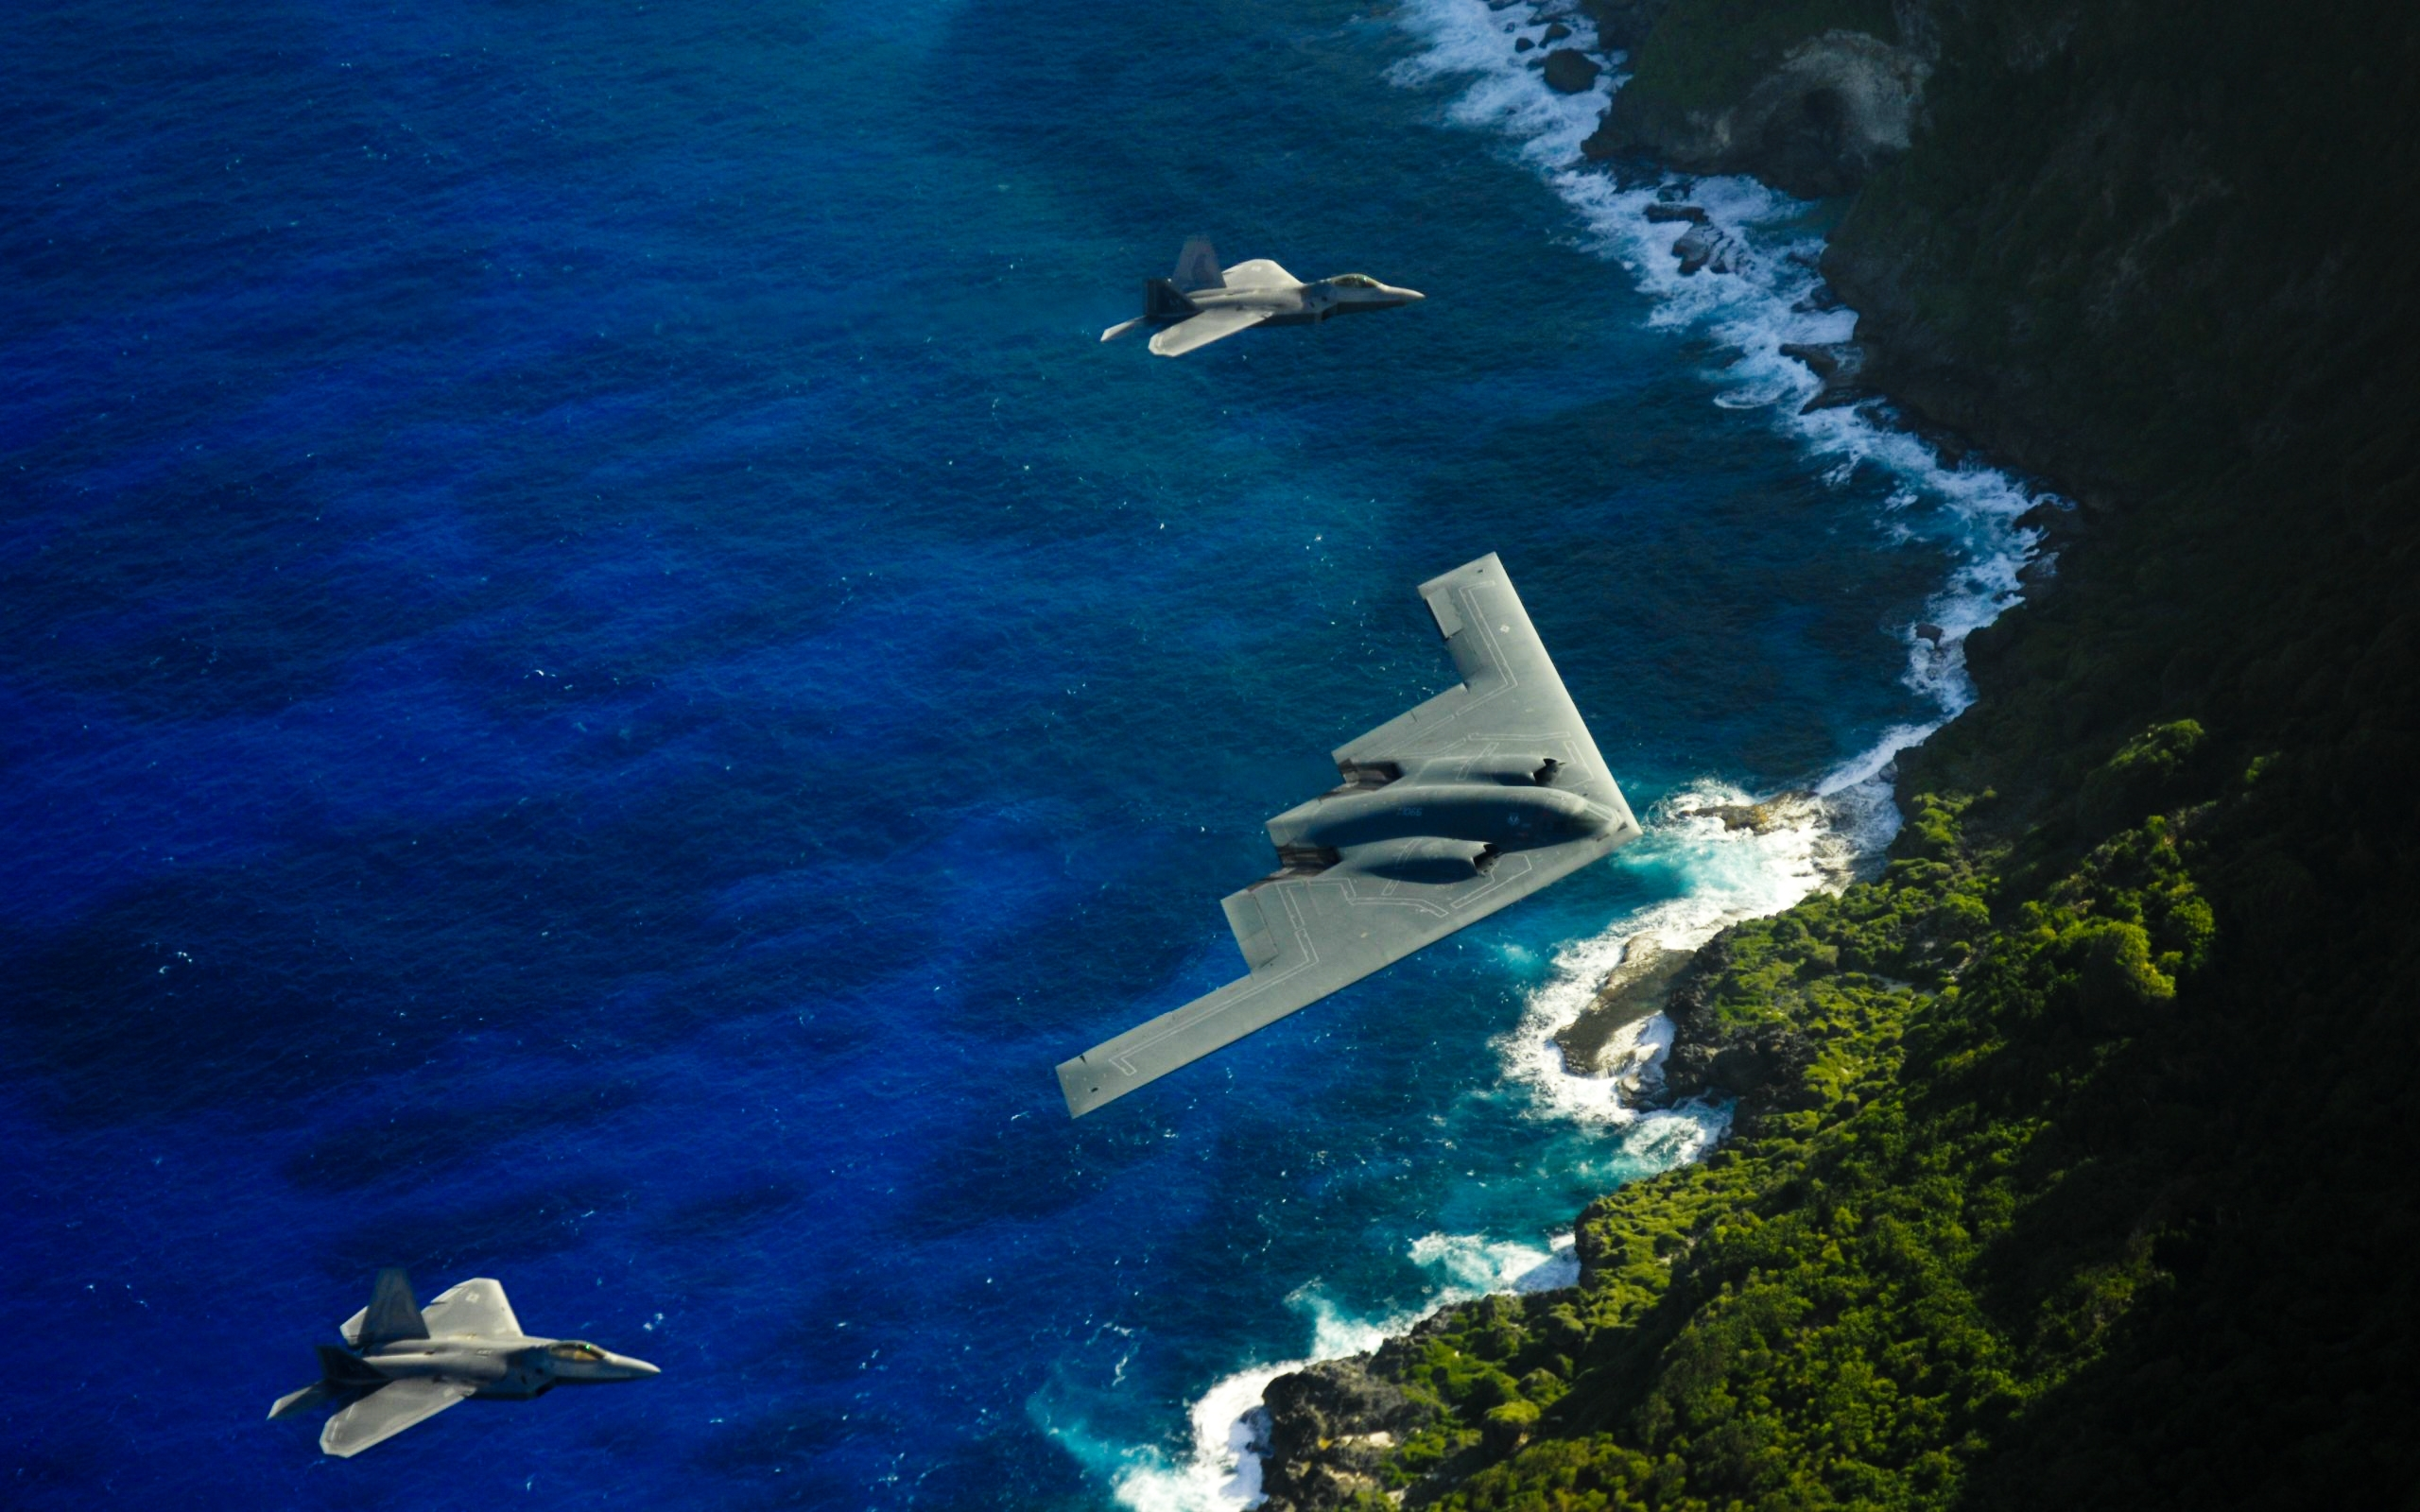 beach bomber stealth bomber planes b2 spirit 2560x1700 wallpaper Art 2560x1600